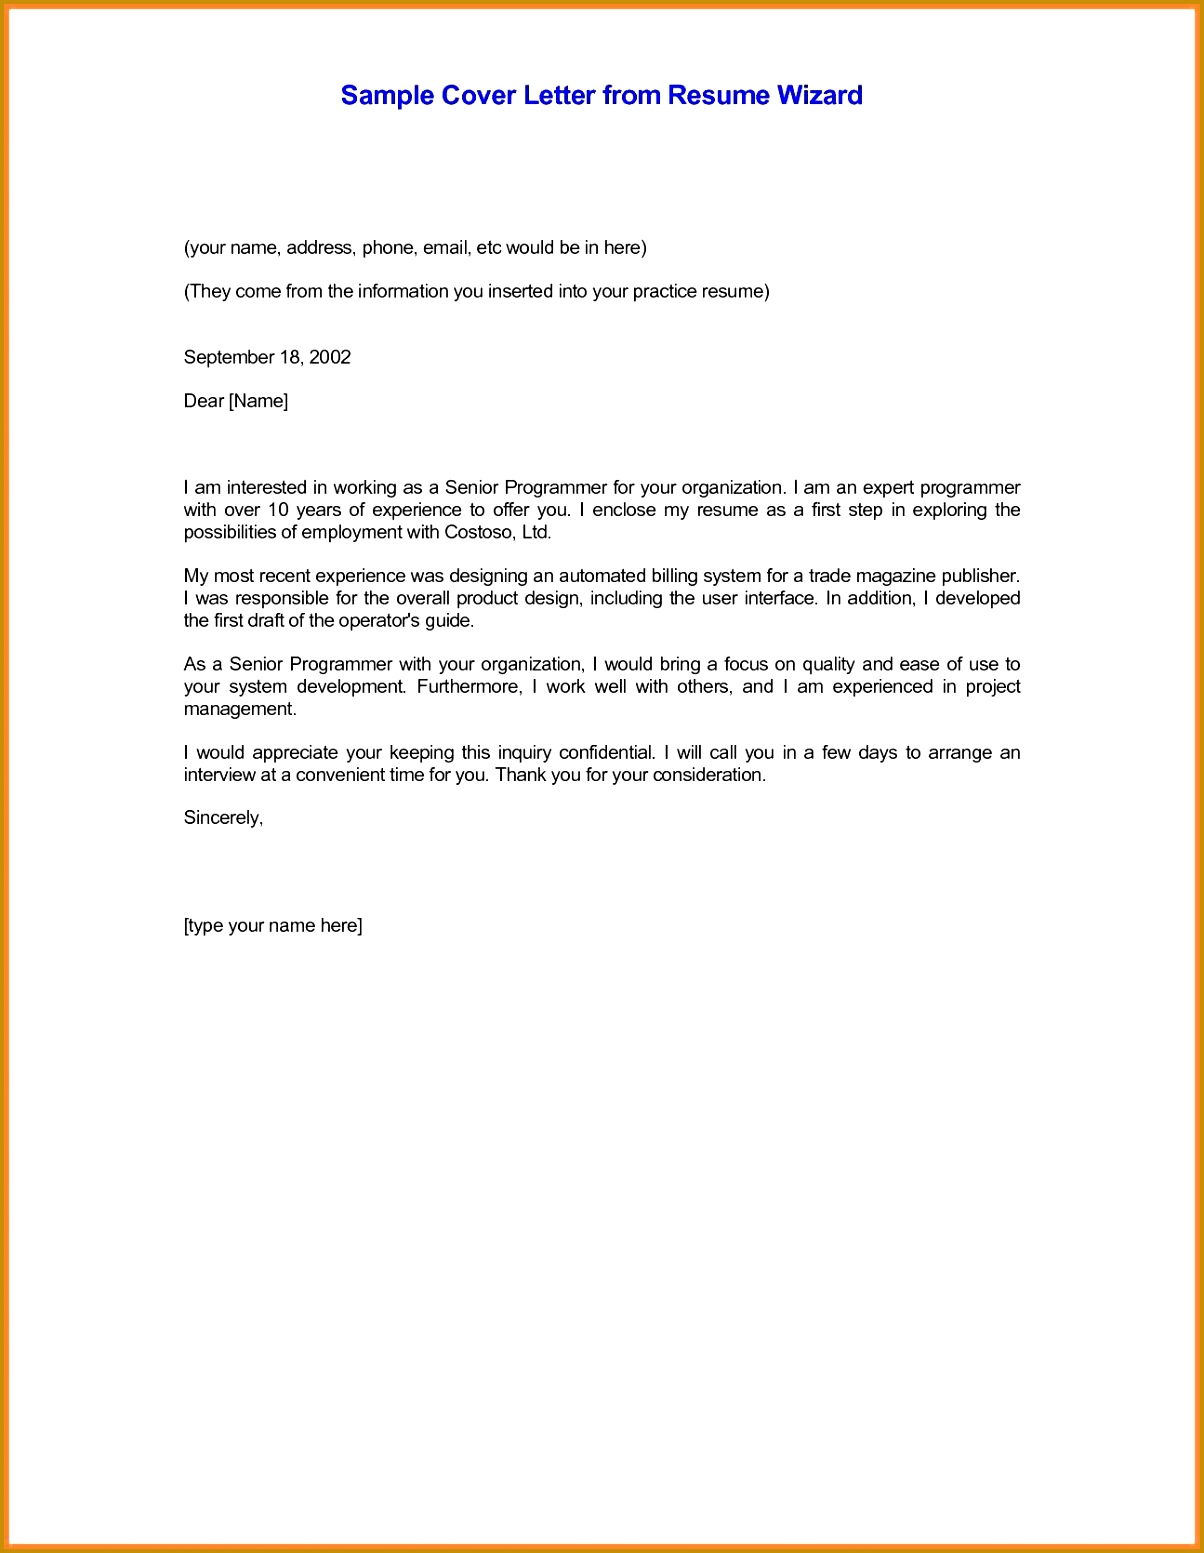 Cover Letter Fill In New Cover Letter Exmples Unique Example Cover Letter for Resume Cover 15531204